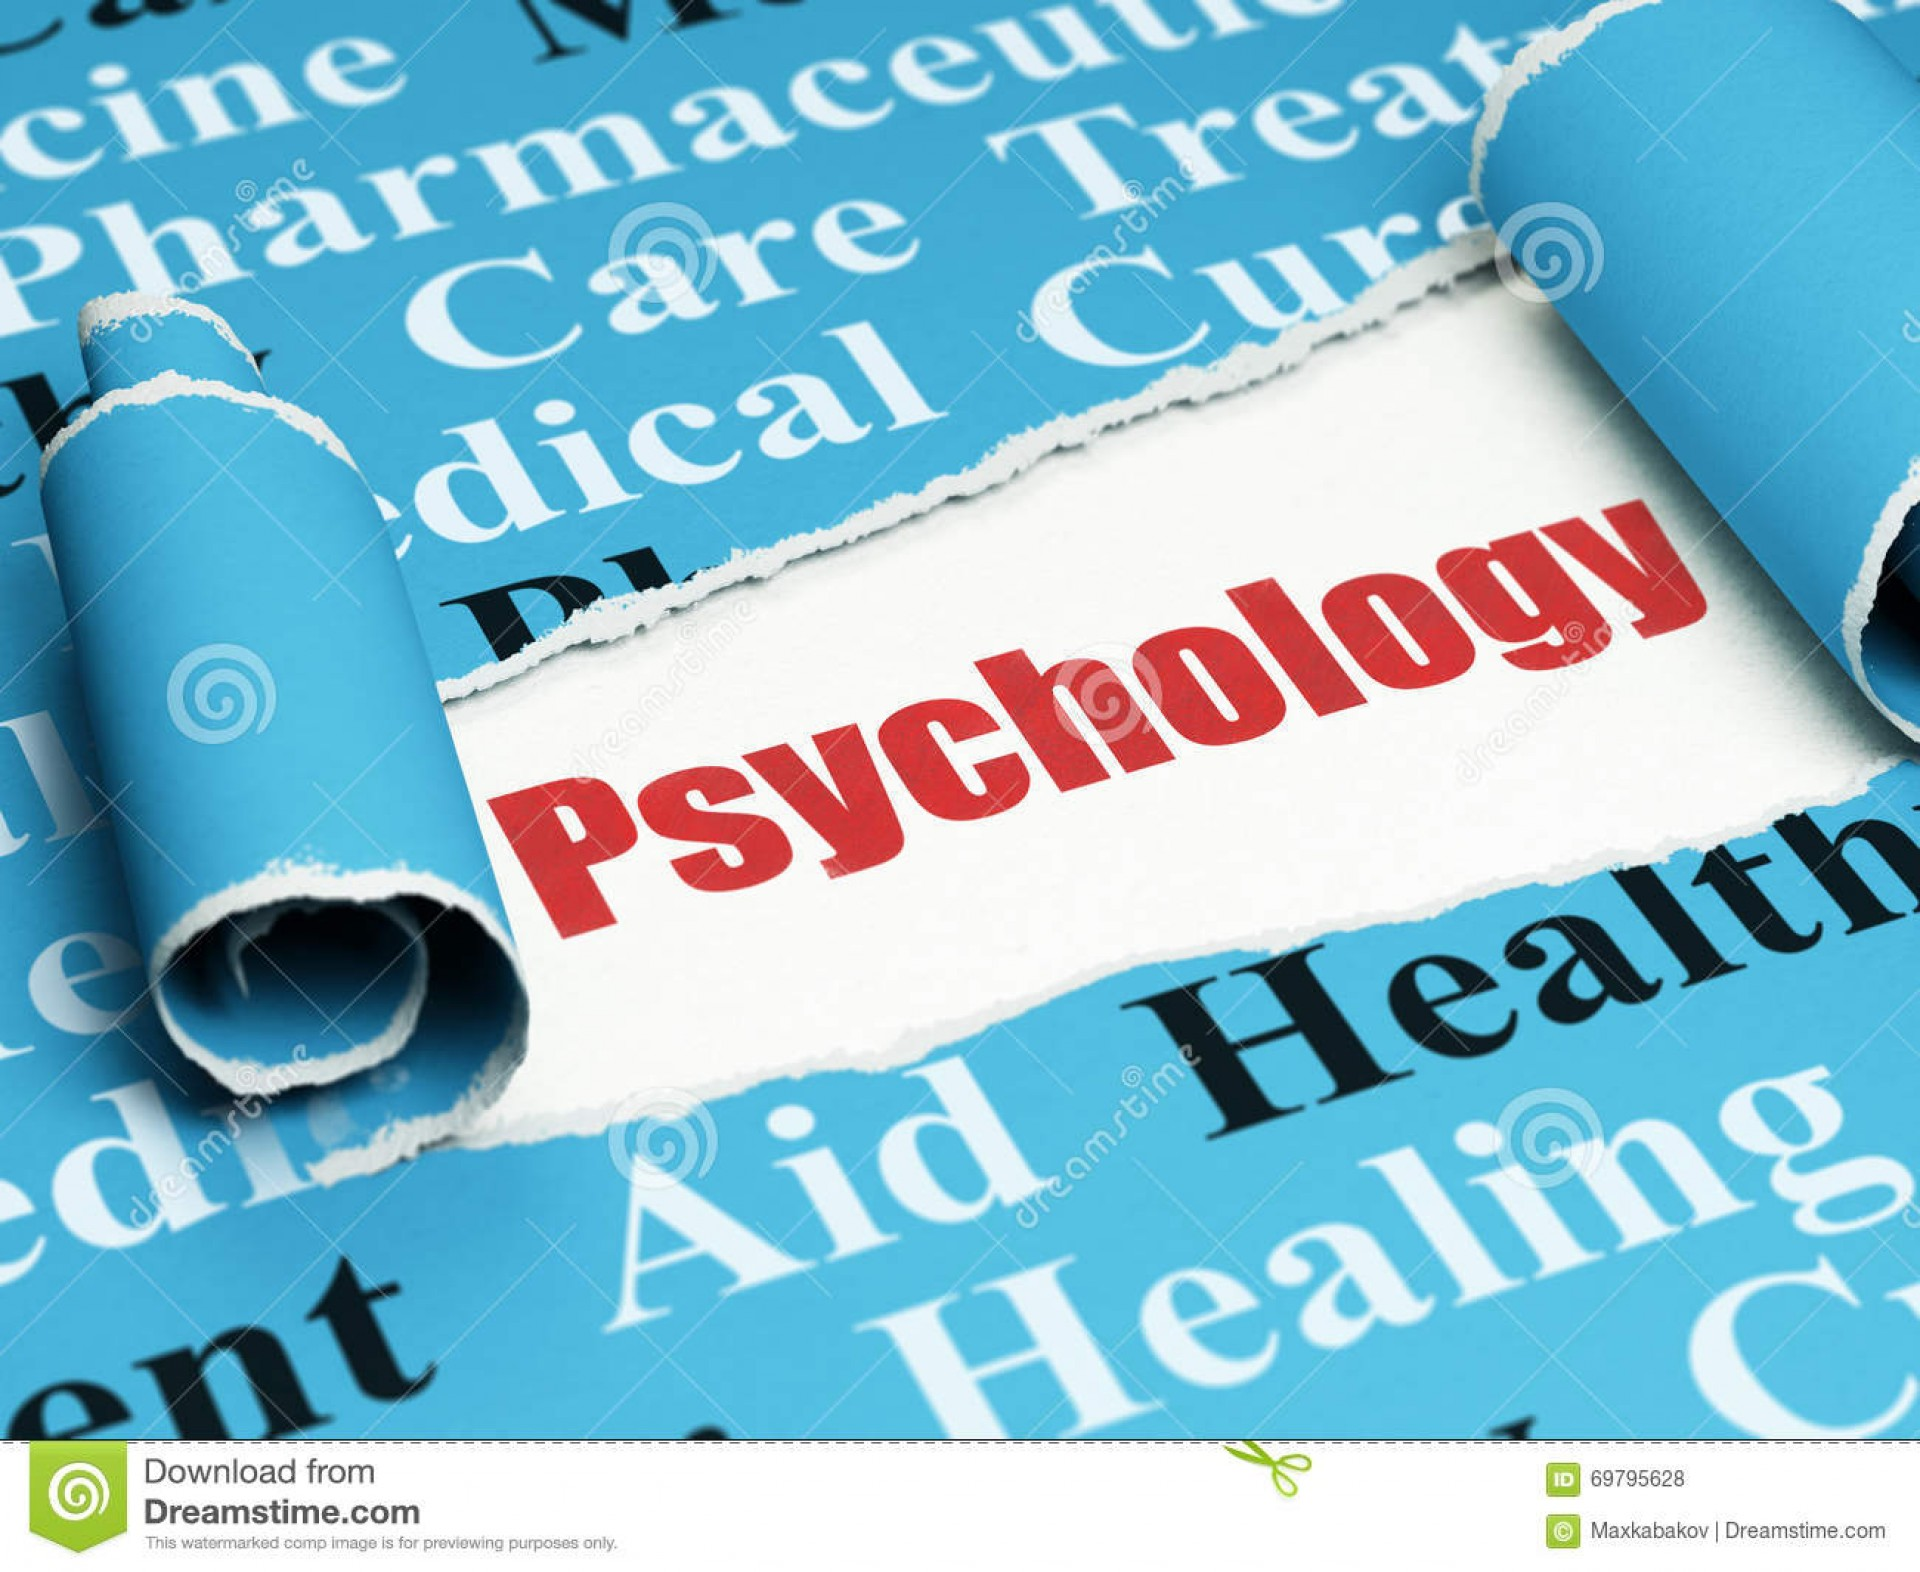 010 Research Paper Psychology On Dreams Health Concept Red Text Under Piece Torn Curled Blue Tag Cloud Rendering Singular Topics 1920